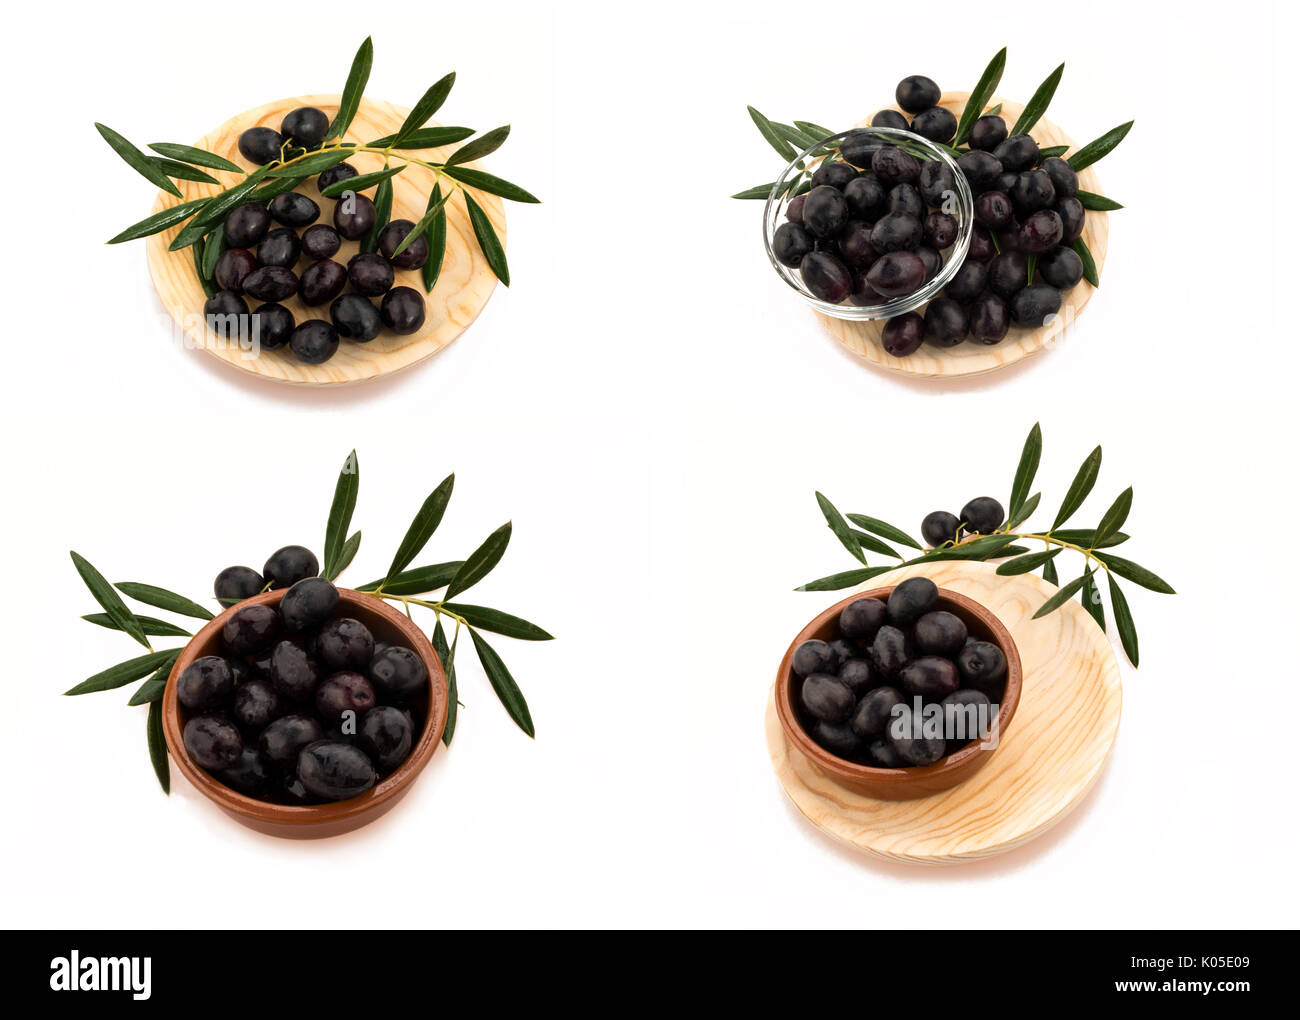 set of four images collection of black olives with greenery  in different combinations, on a isolated white background, - Stock Image